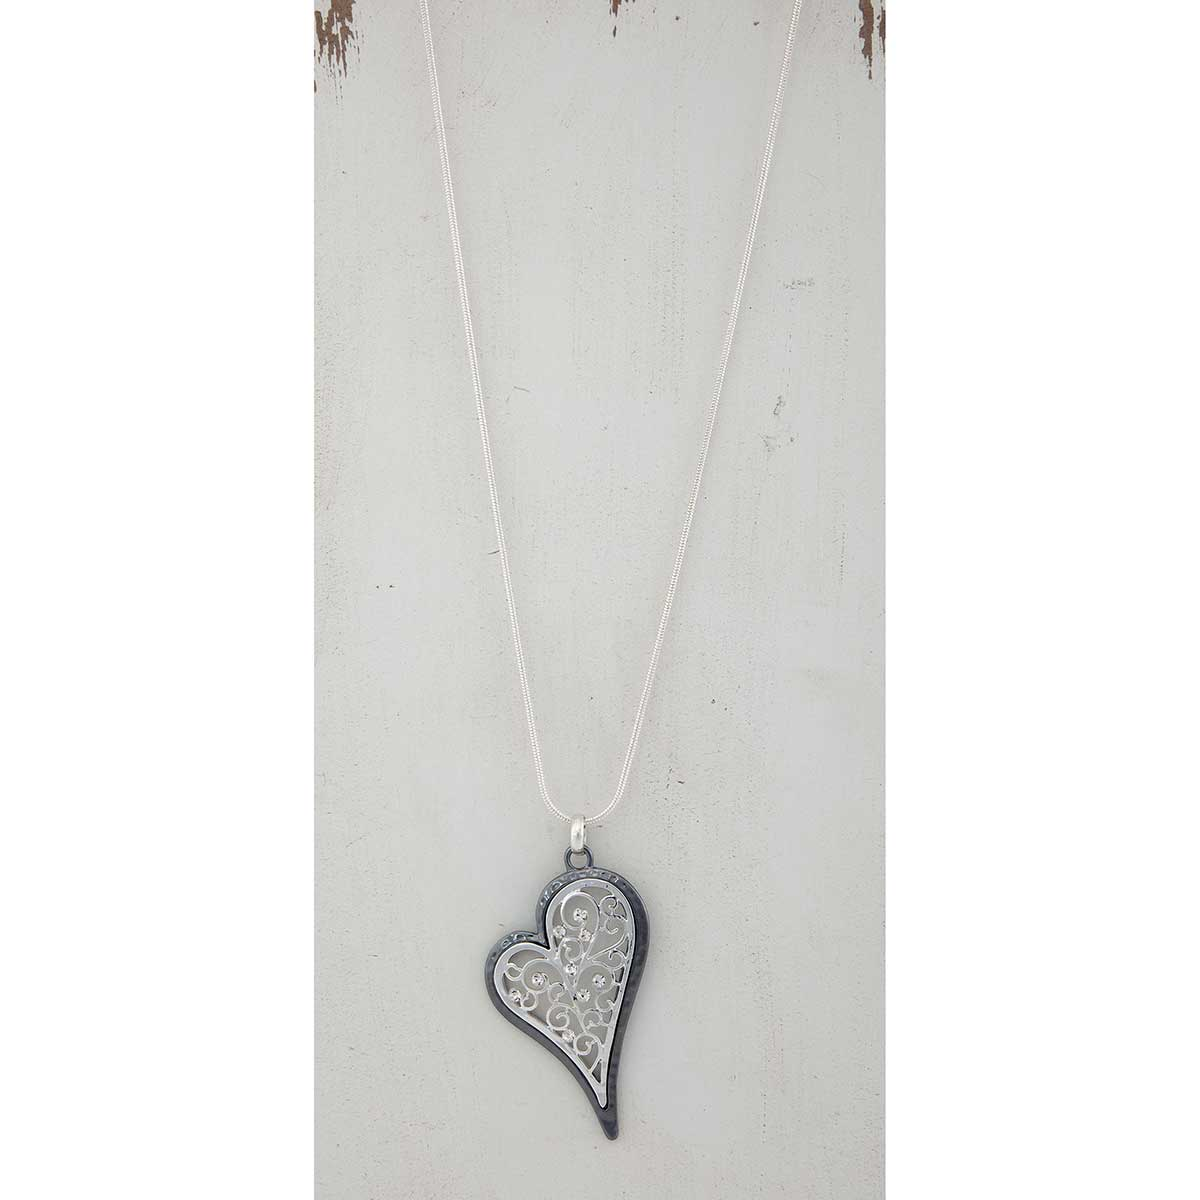 Two-Tone Filigree Heart on Silver Chain Necklace 36""